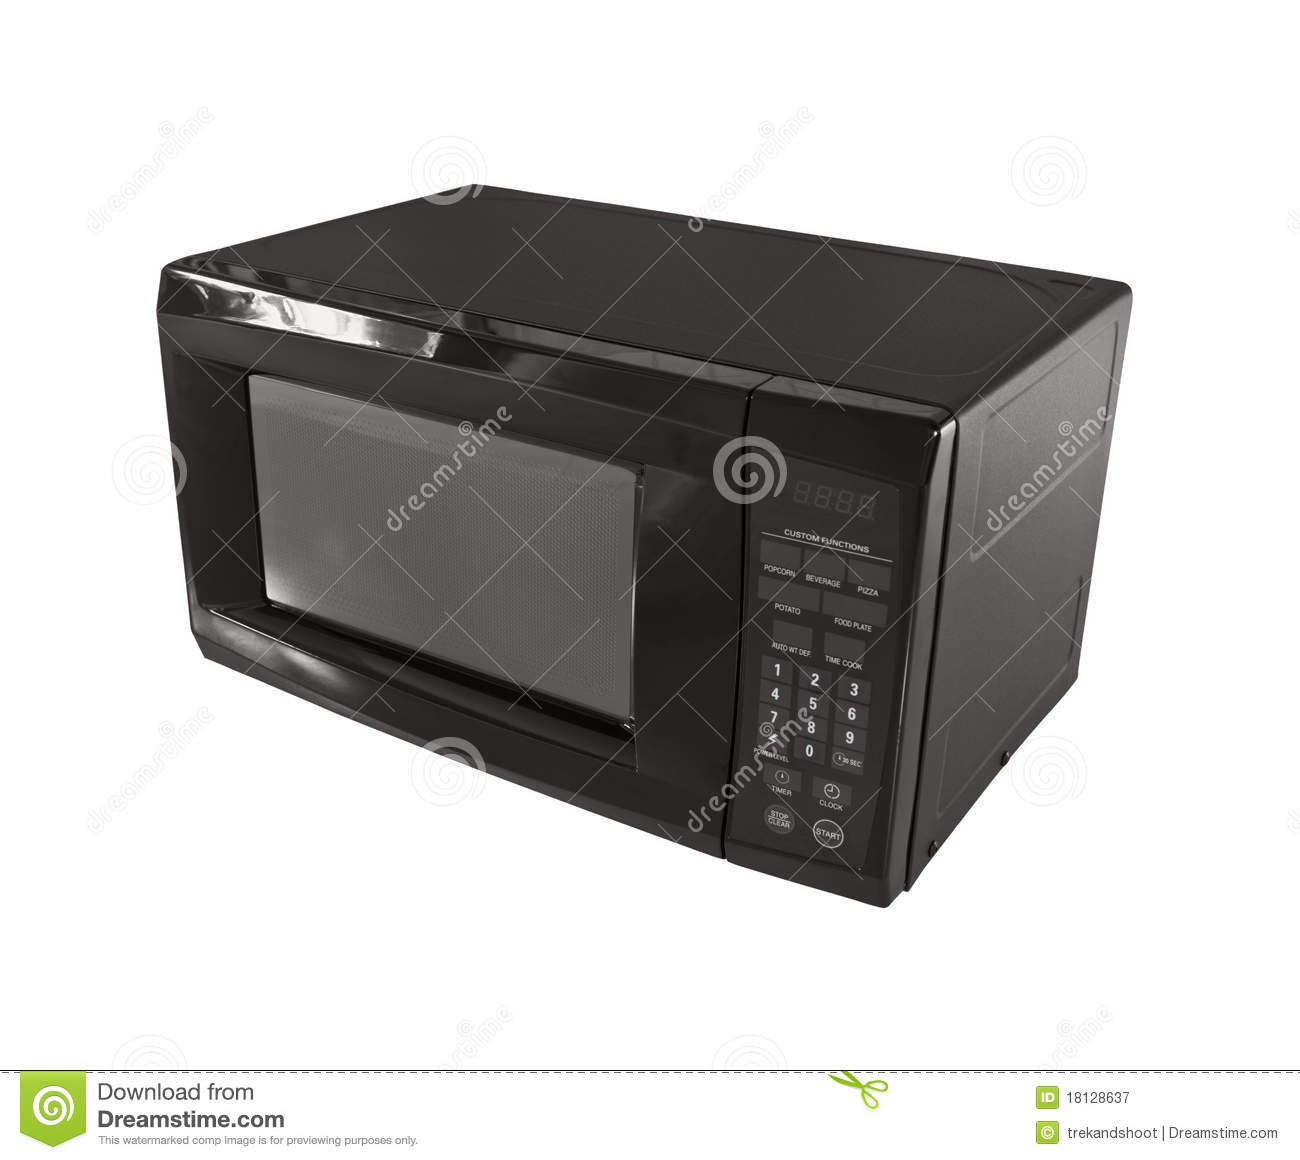 Typical Microwave